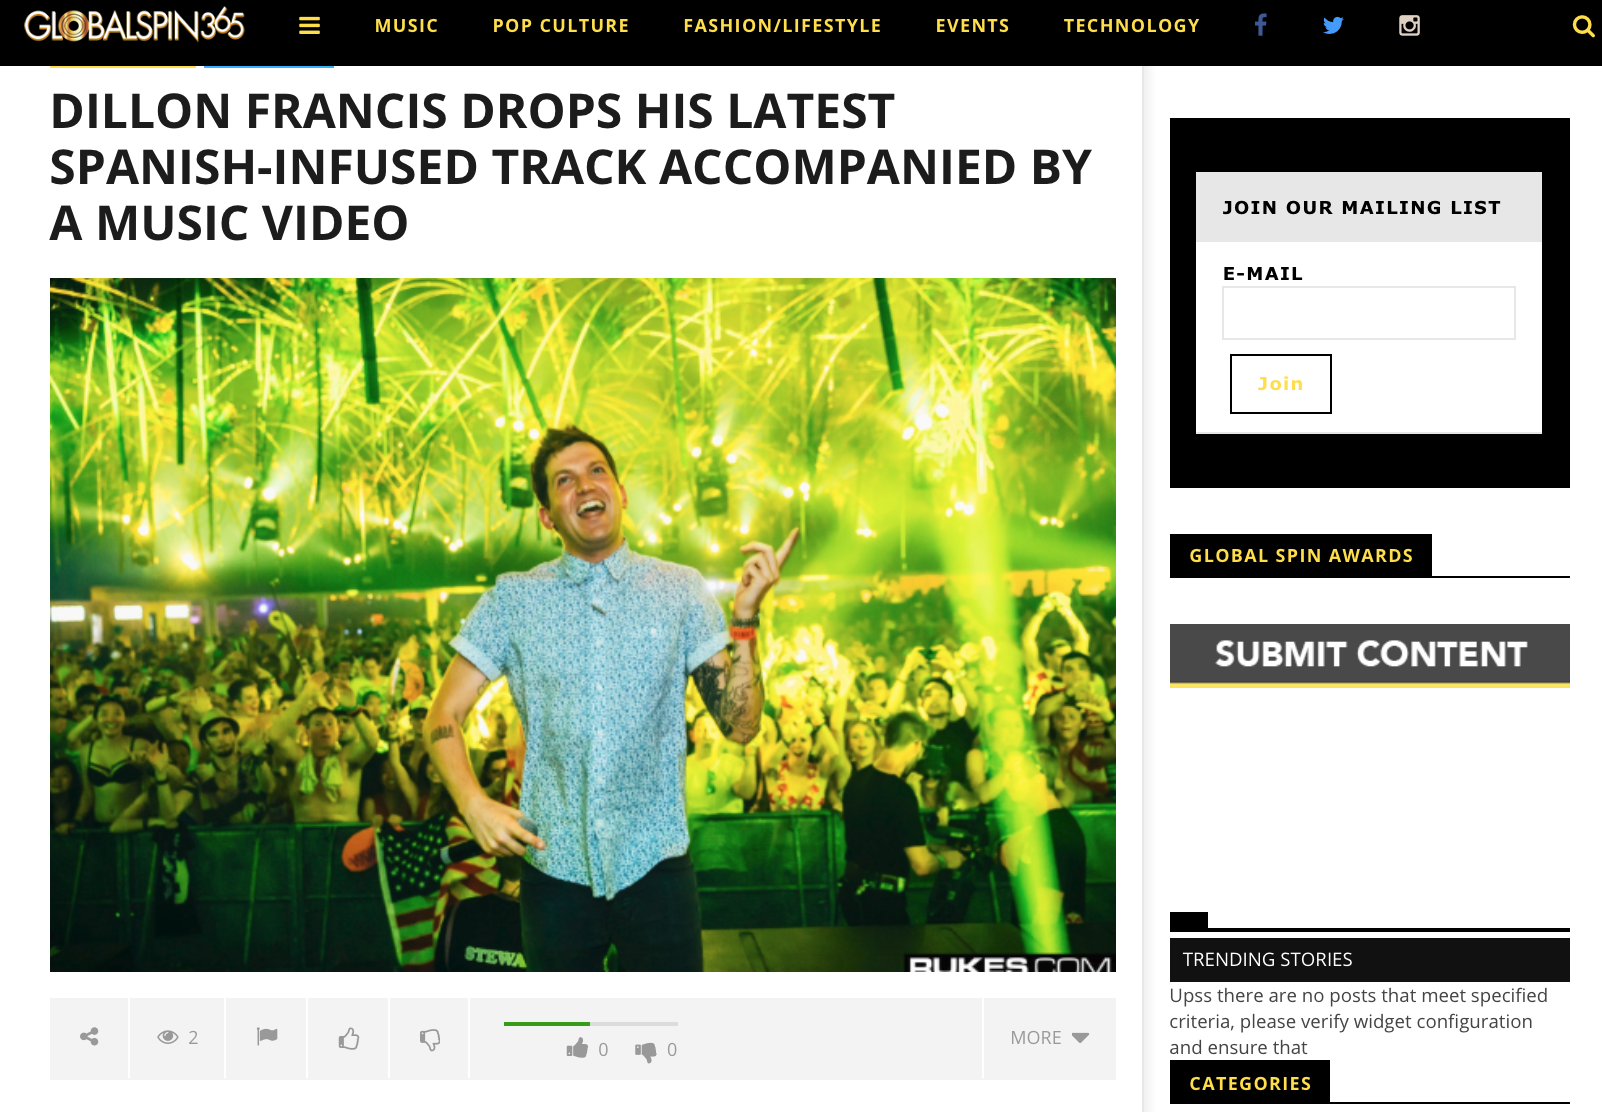 DILLON FRANCIS DROPS HIS LATEST SPANISH-INFUSED TRACK ACCOMPANIED BY A MUSIC VIDEO